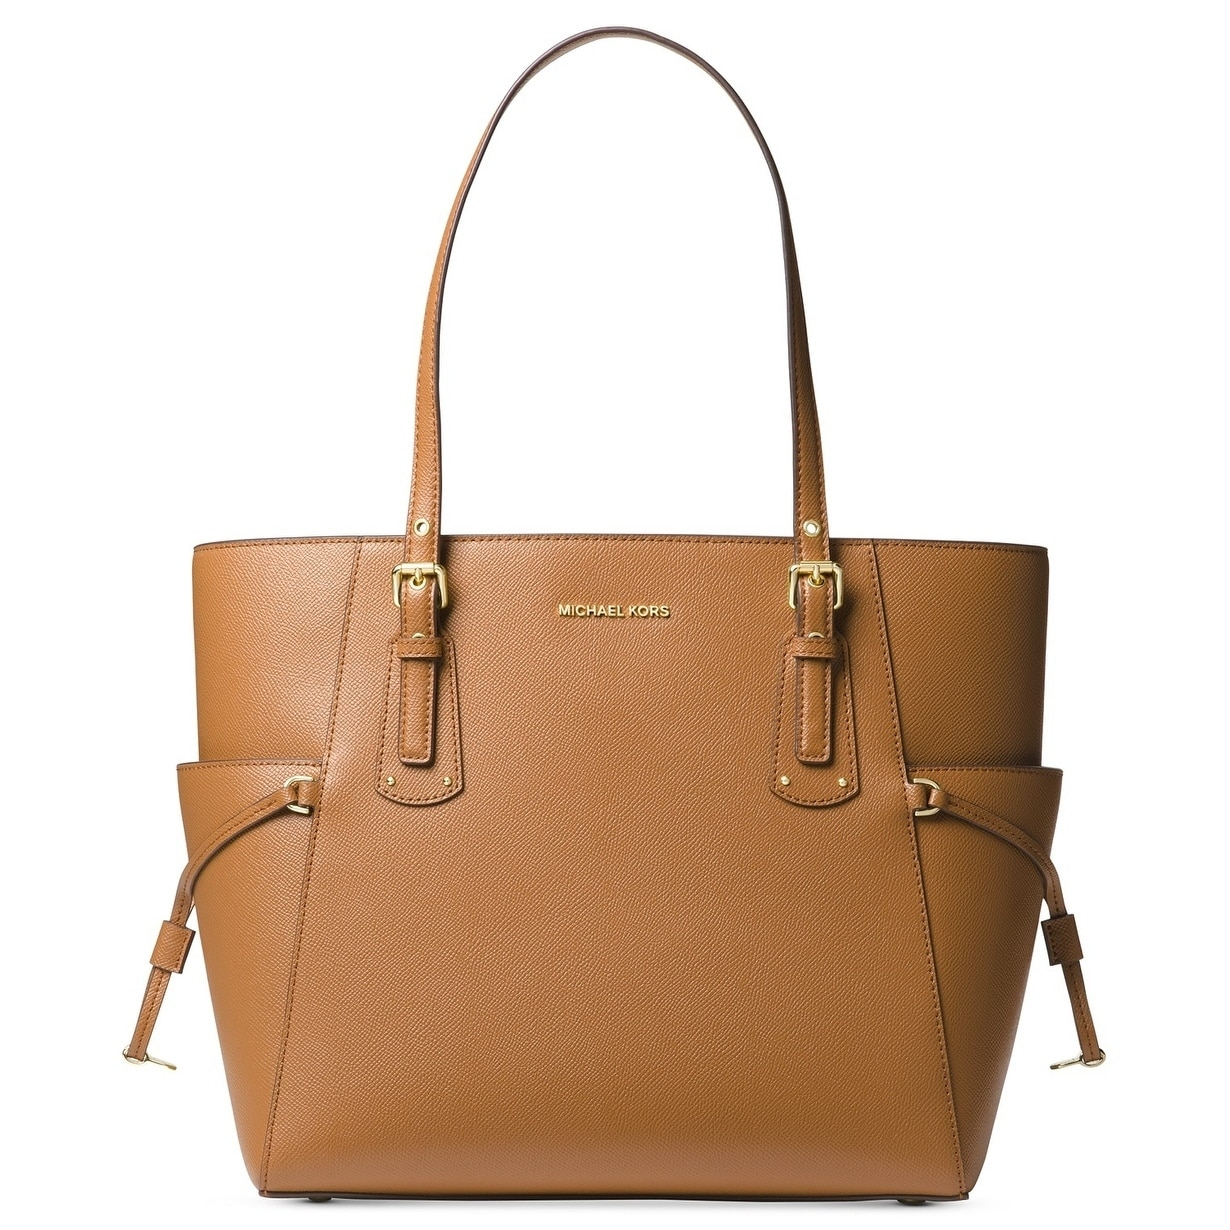 90e636adbd7960 Buy Michael Kors Tote Bags Online at Overstock | Our Best Shop By Style  Deals